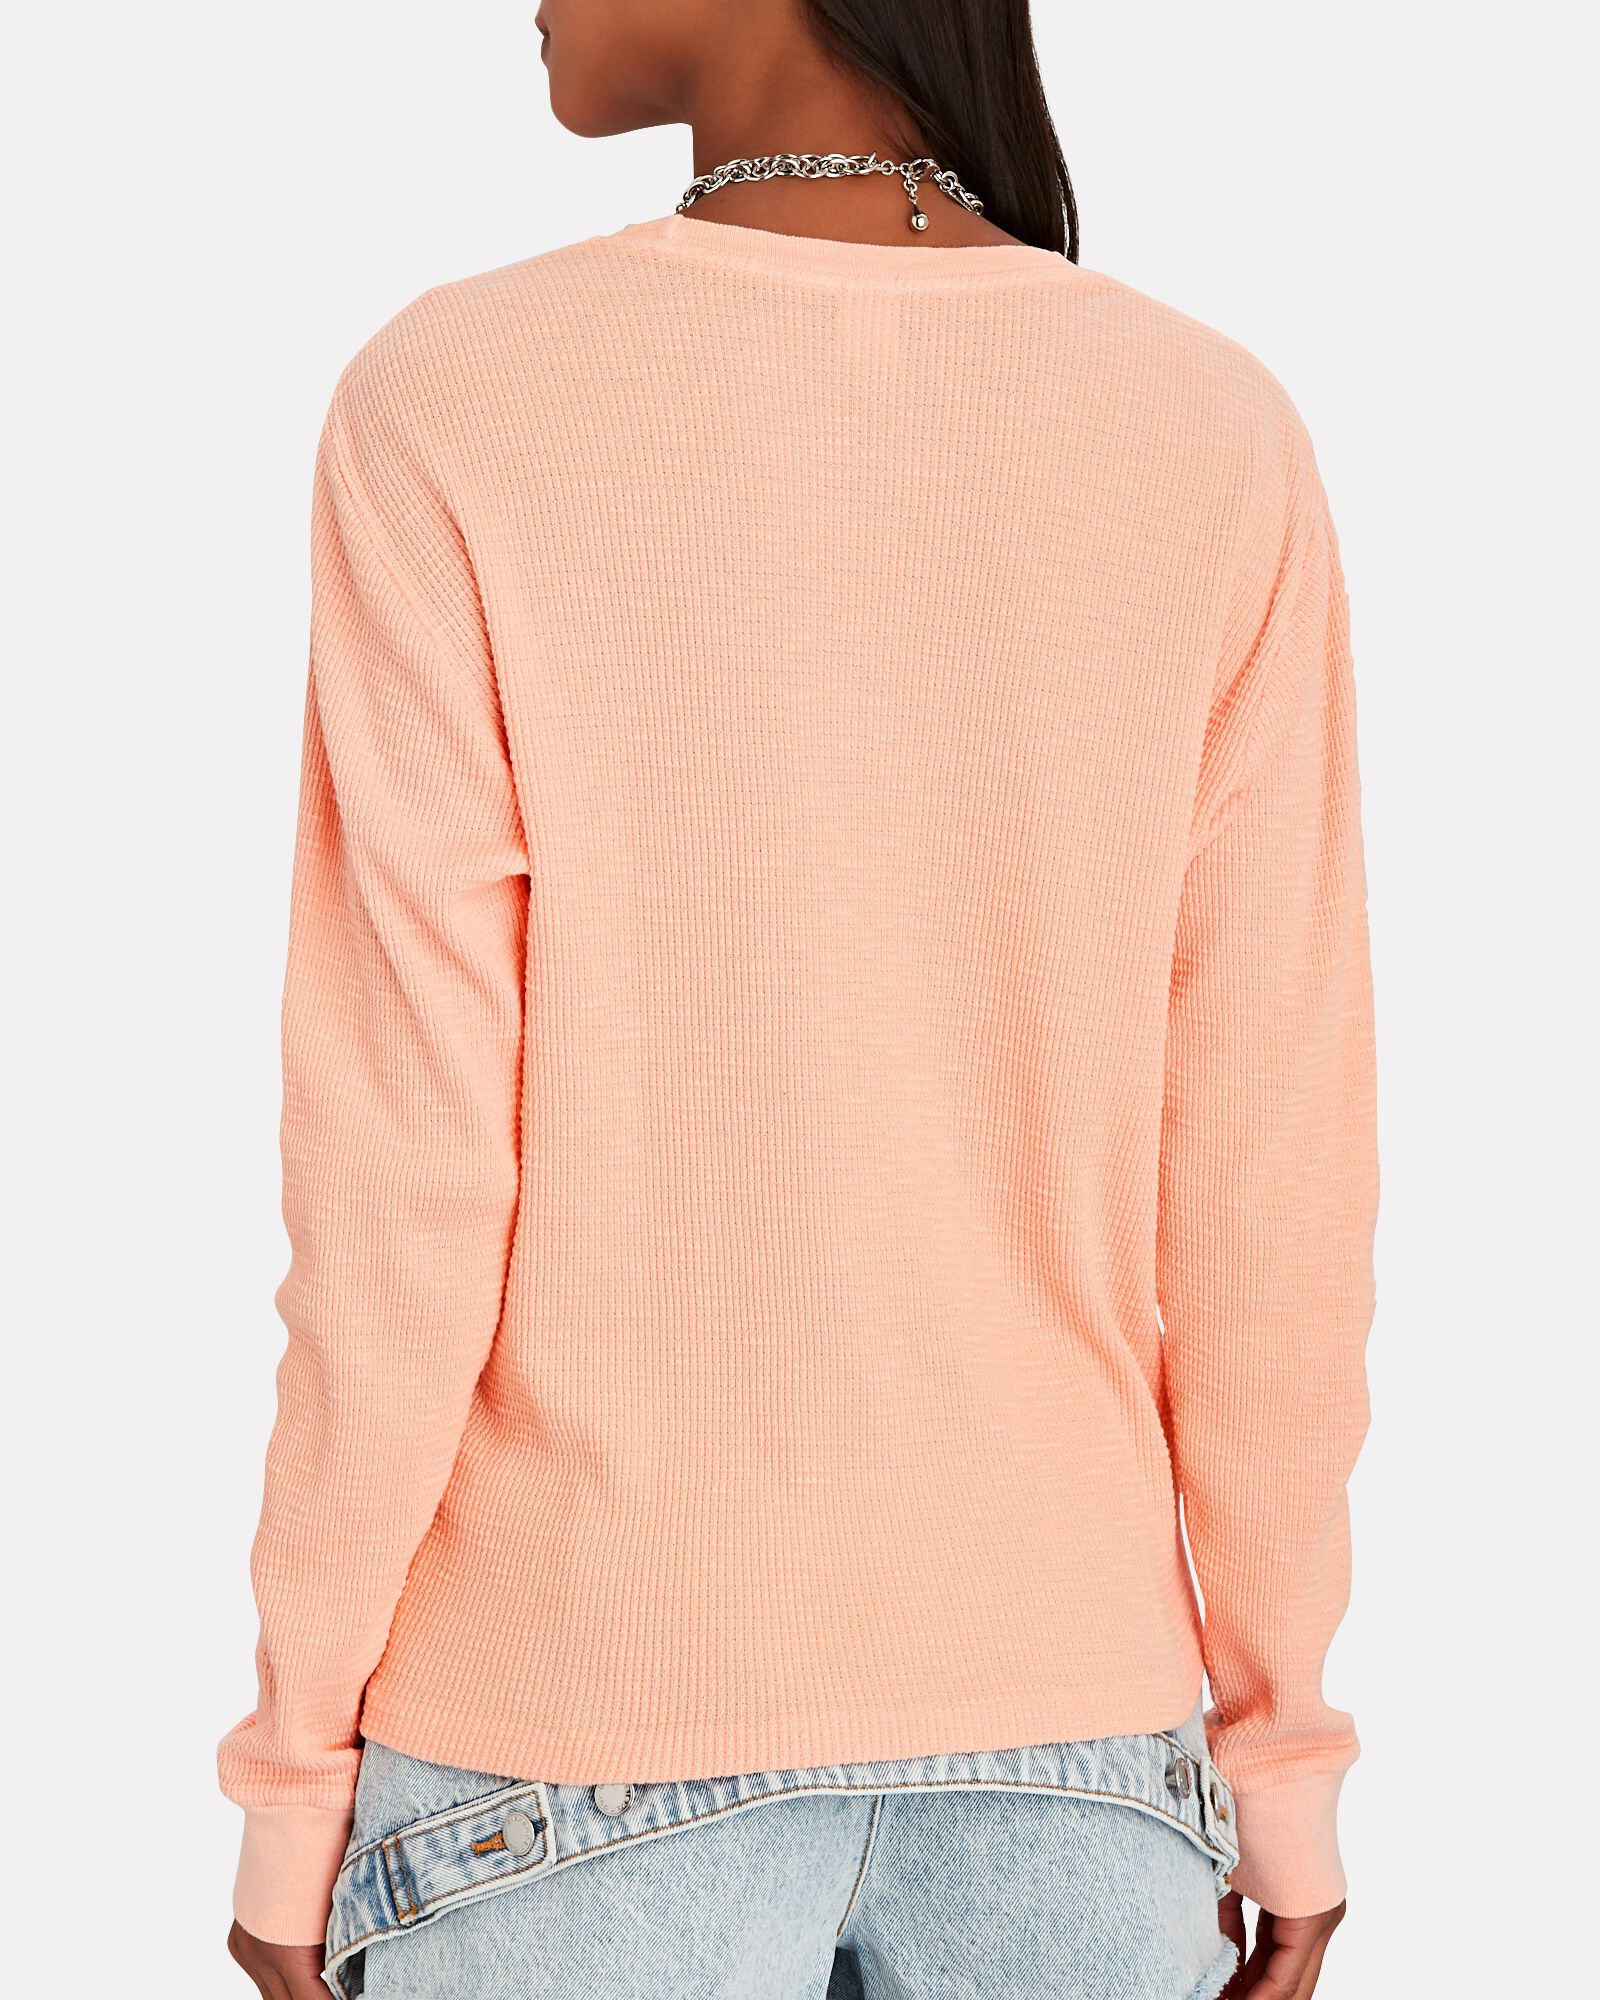 Thermal Long Sleeve T-Shirt, CORAL, hi-res